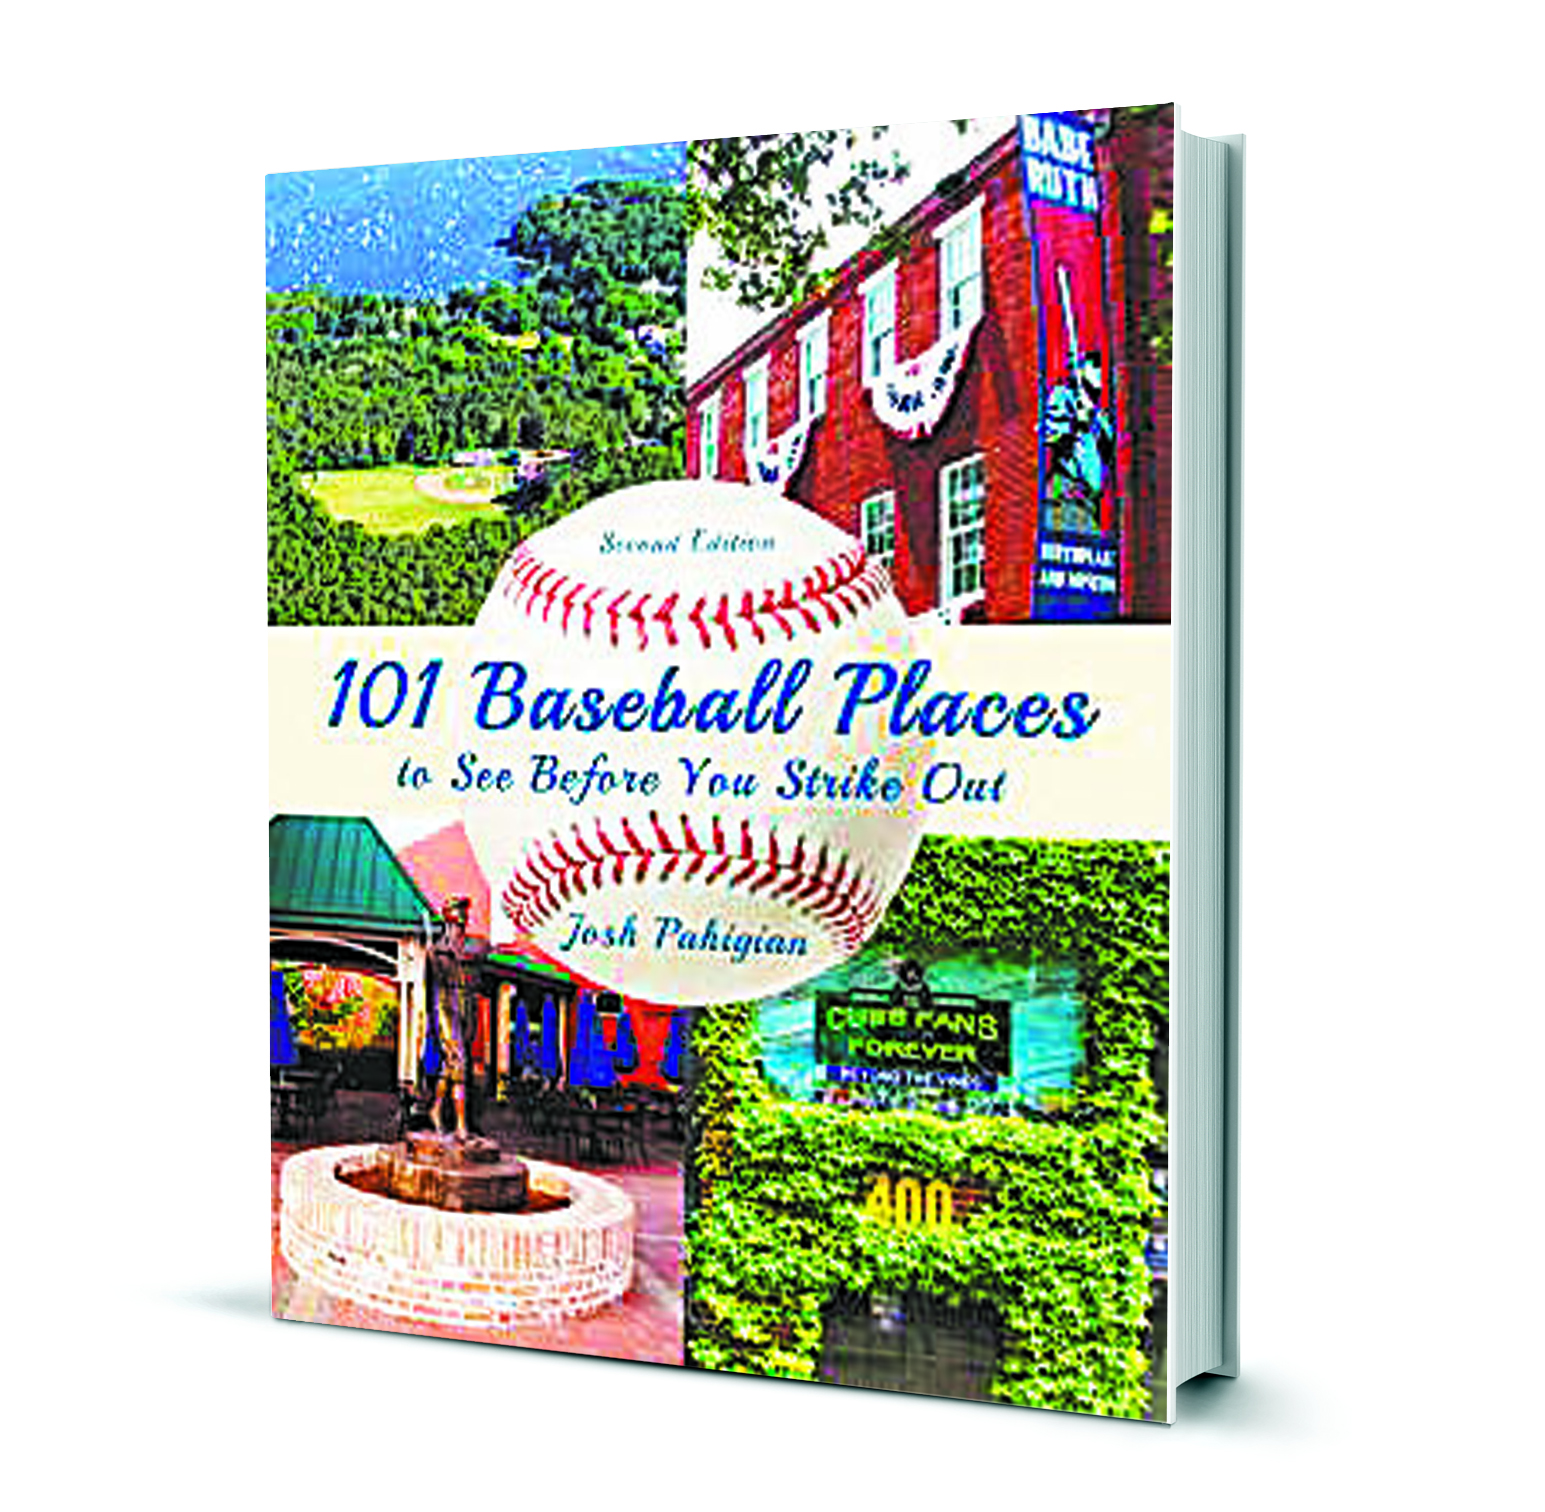 '101 Baseball Places' is a good resource to take to an away game -  HoustonChronicle.com